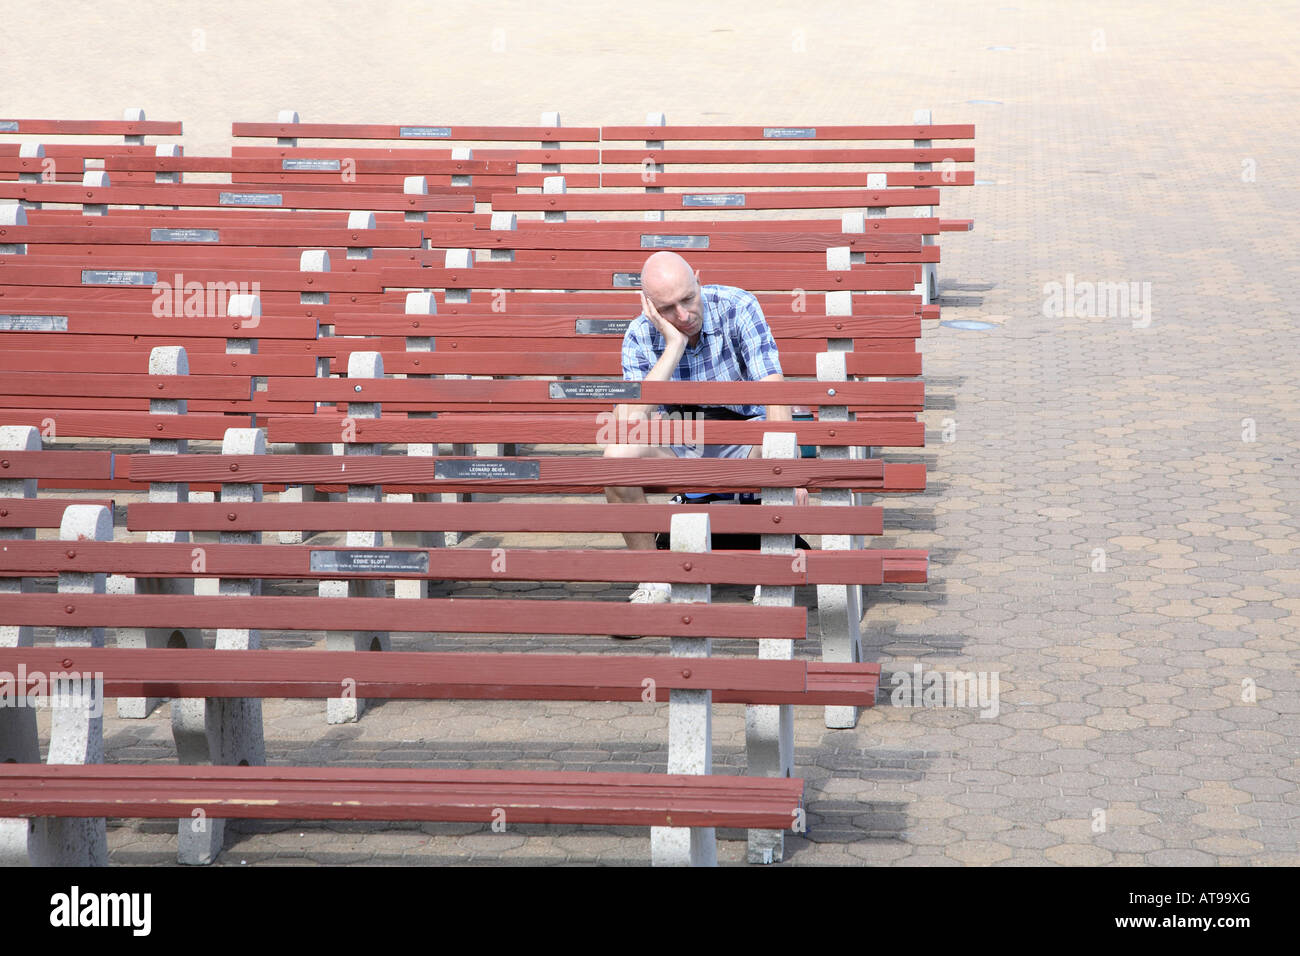 Rows of concrete and wooden seats on brick tiled paving.  All empty except one solitary man sitting on end of row - Stock Image